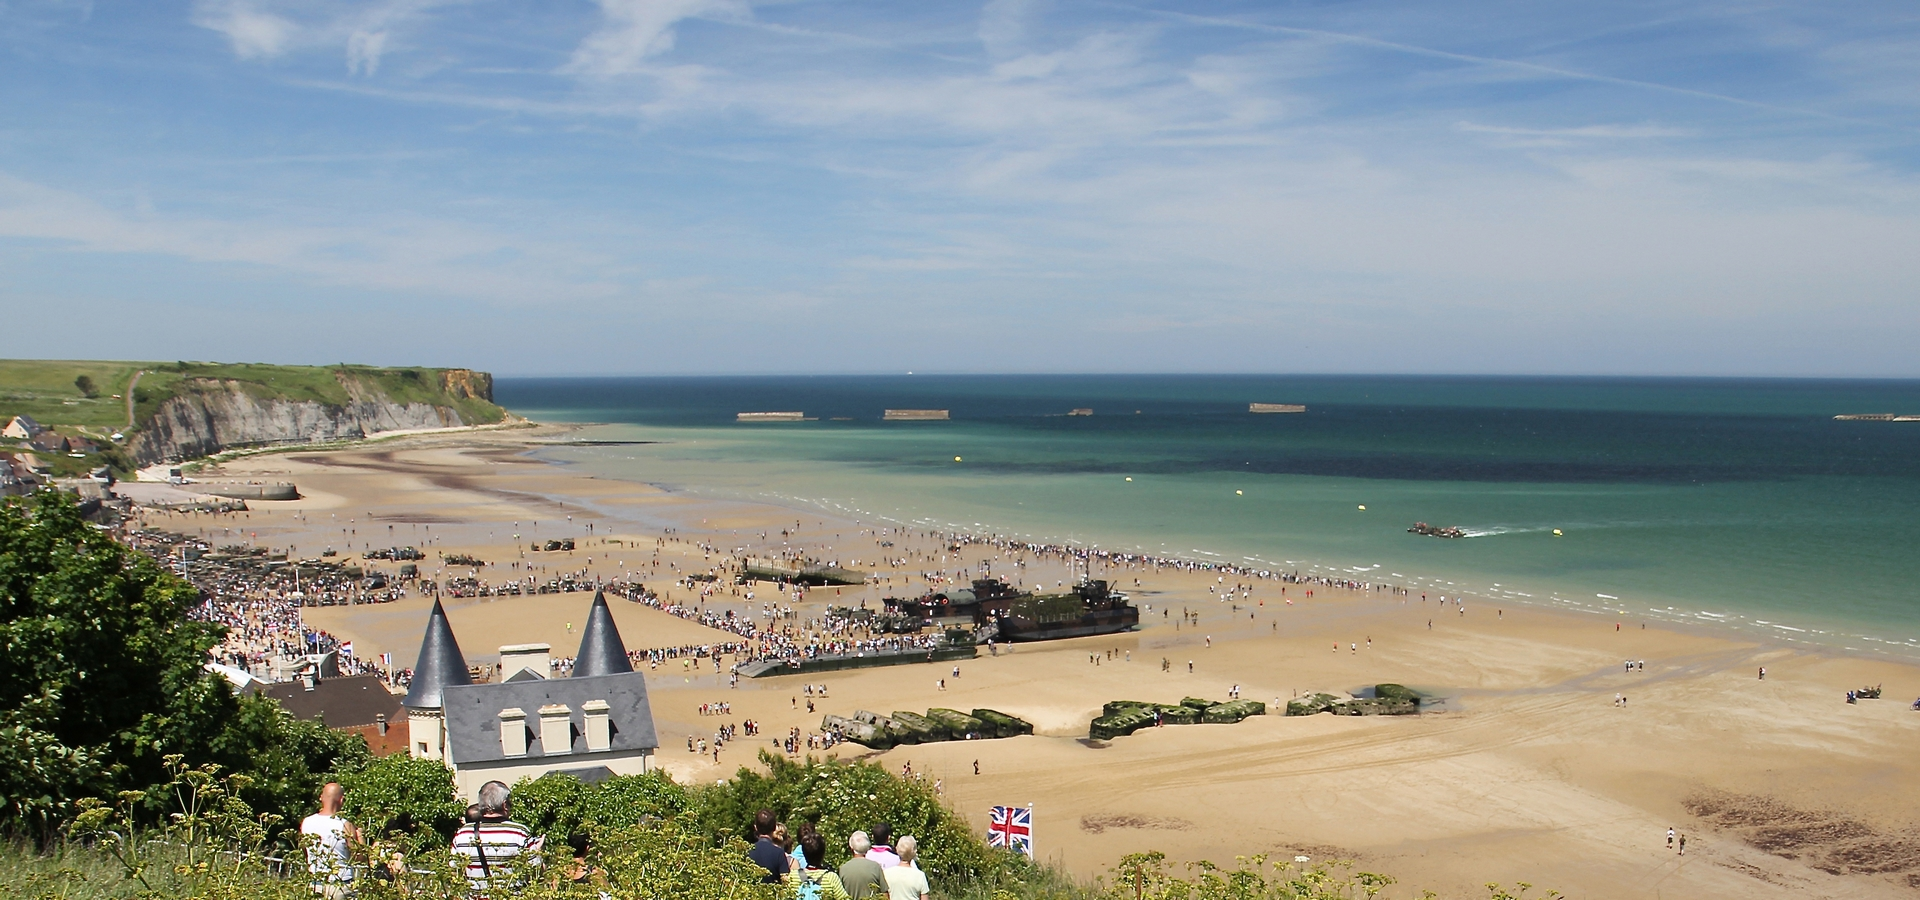 Historic sites Battle of Normandy